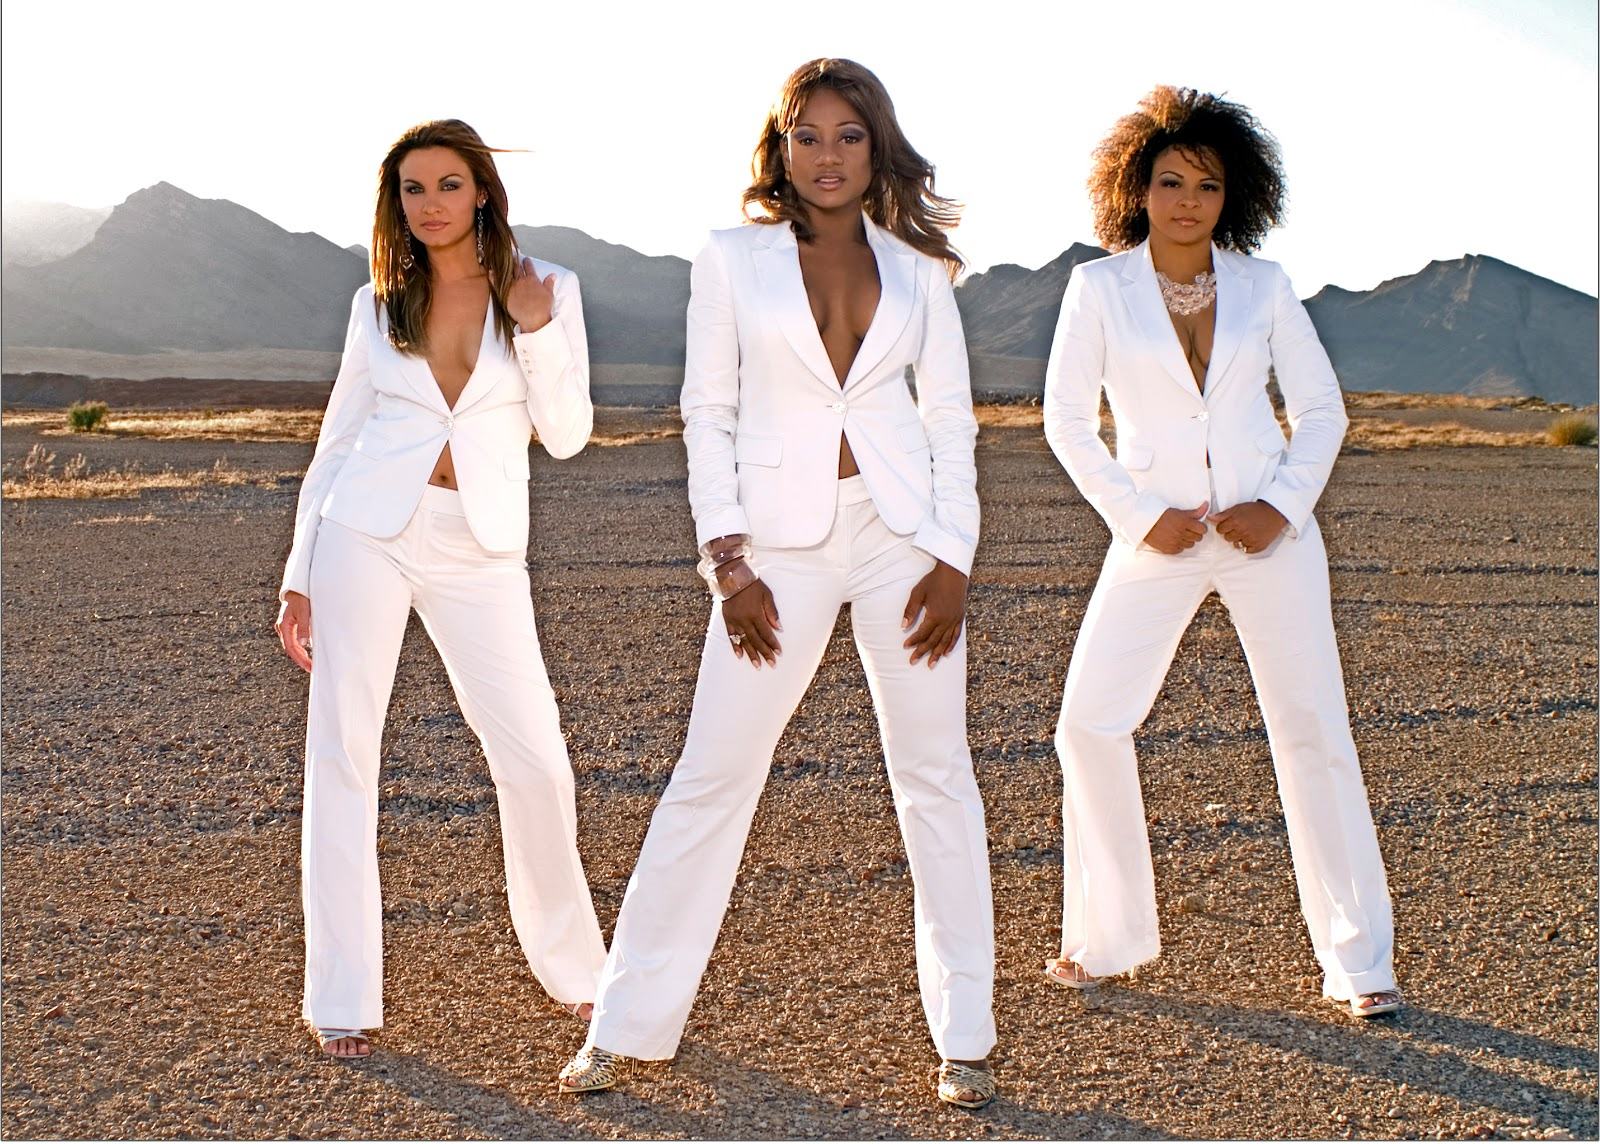 Company B in matching white suits